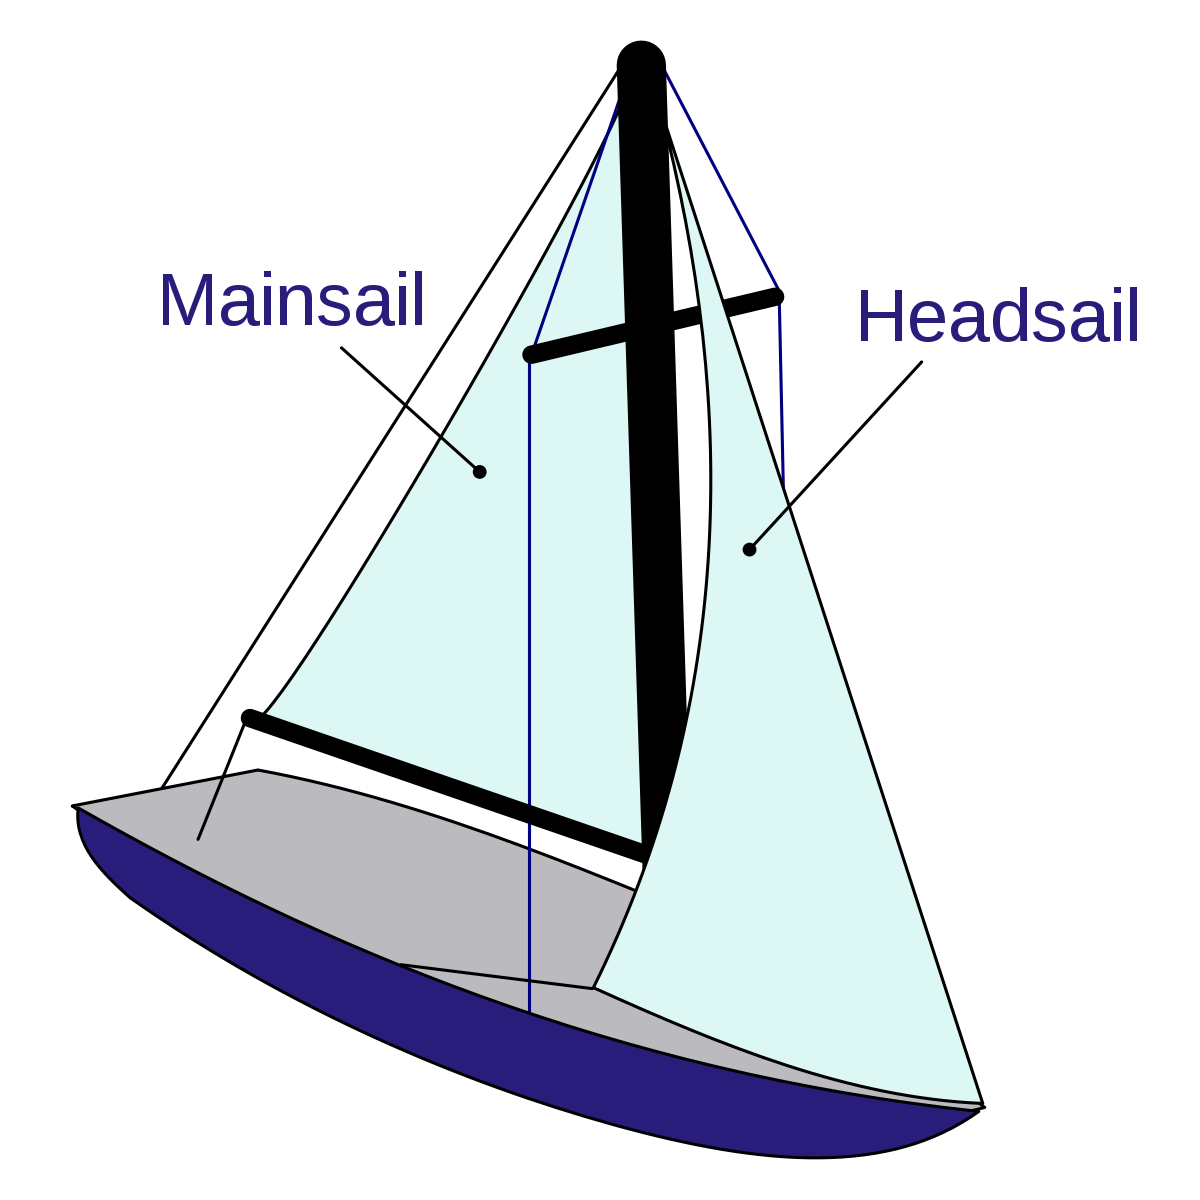 medium resolution of diagram of sailboat in this case a typical monohull sloop with a bermuda or marconi rig description from en wikipedia org